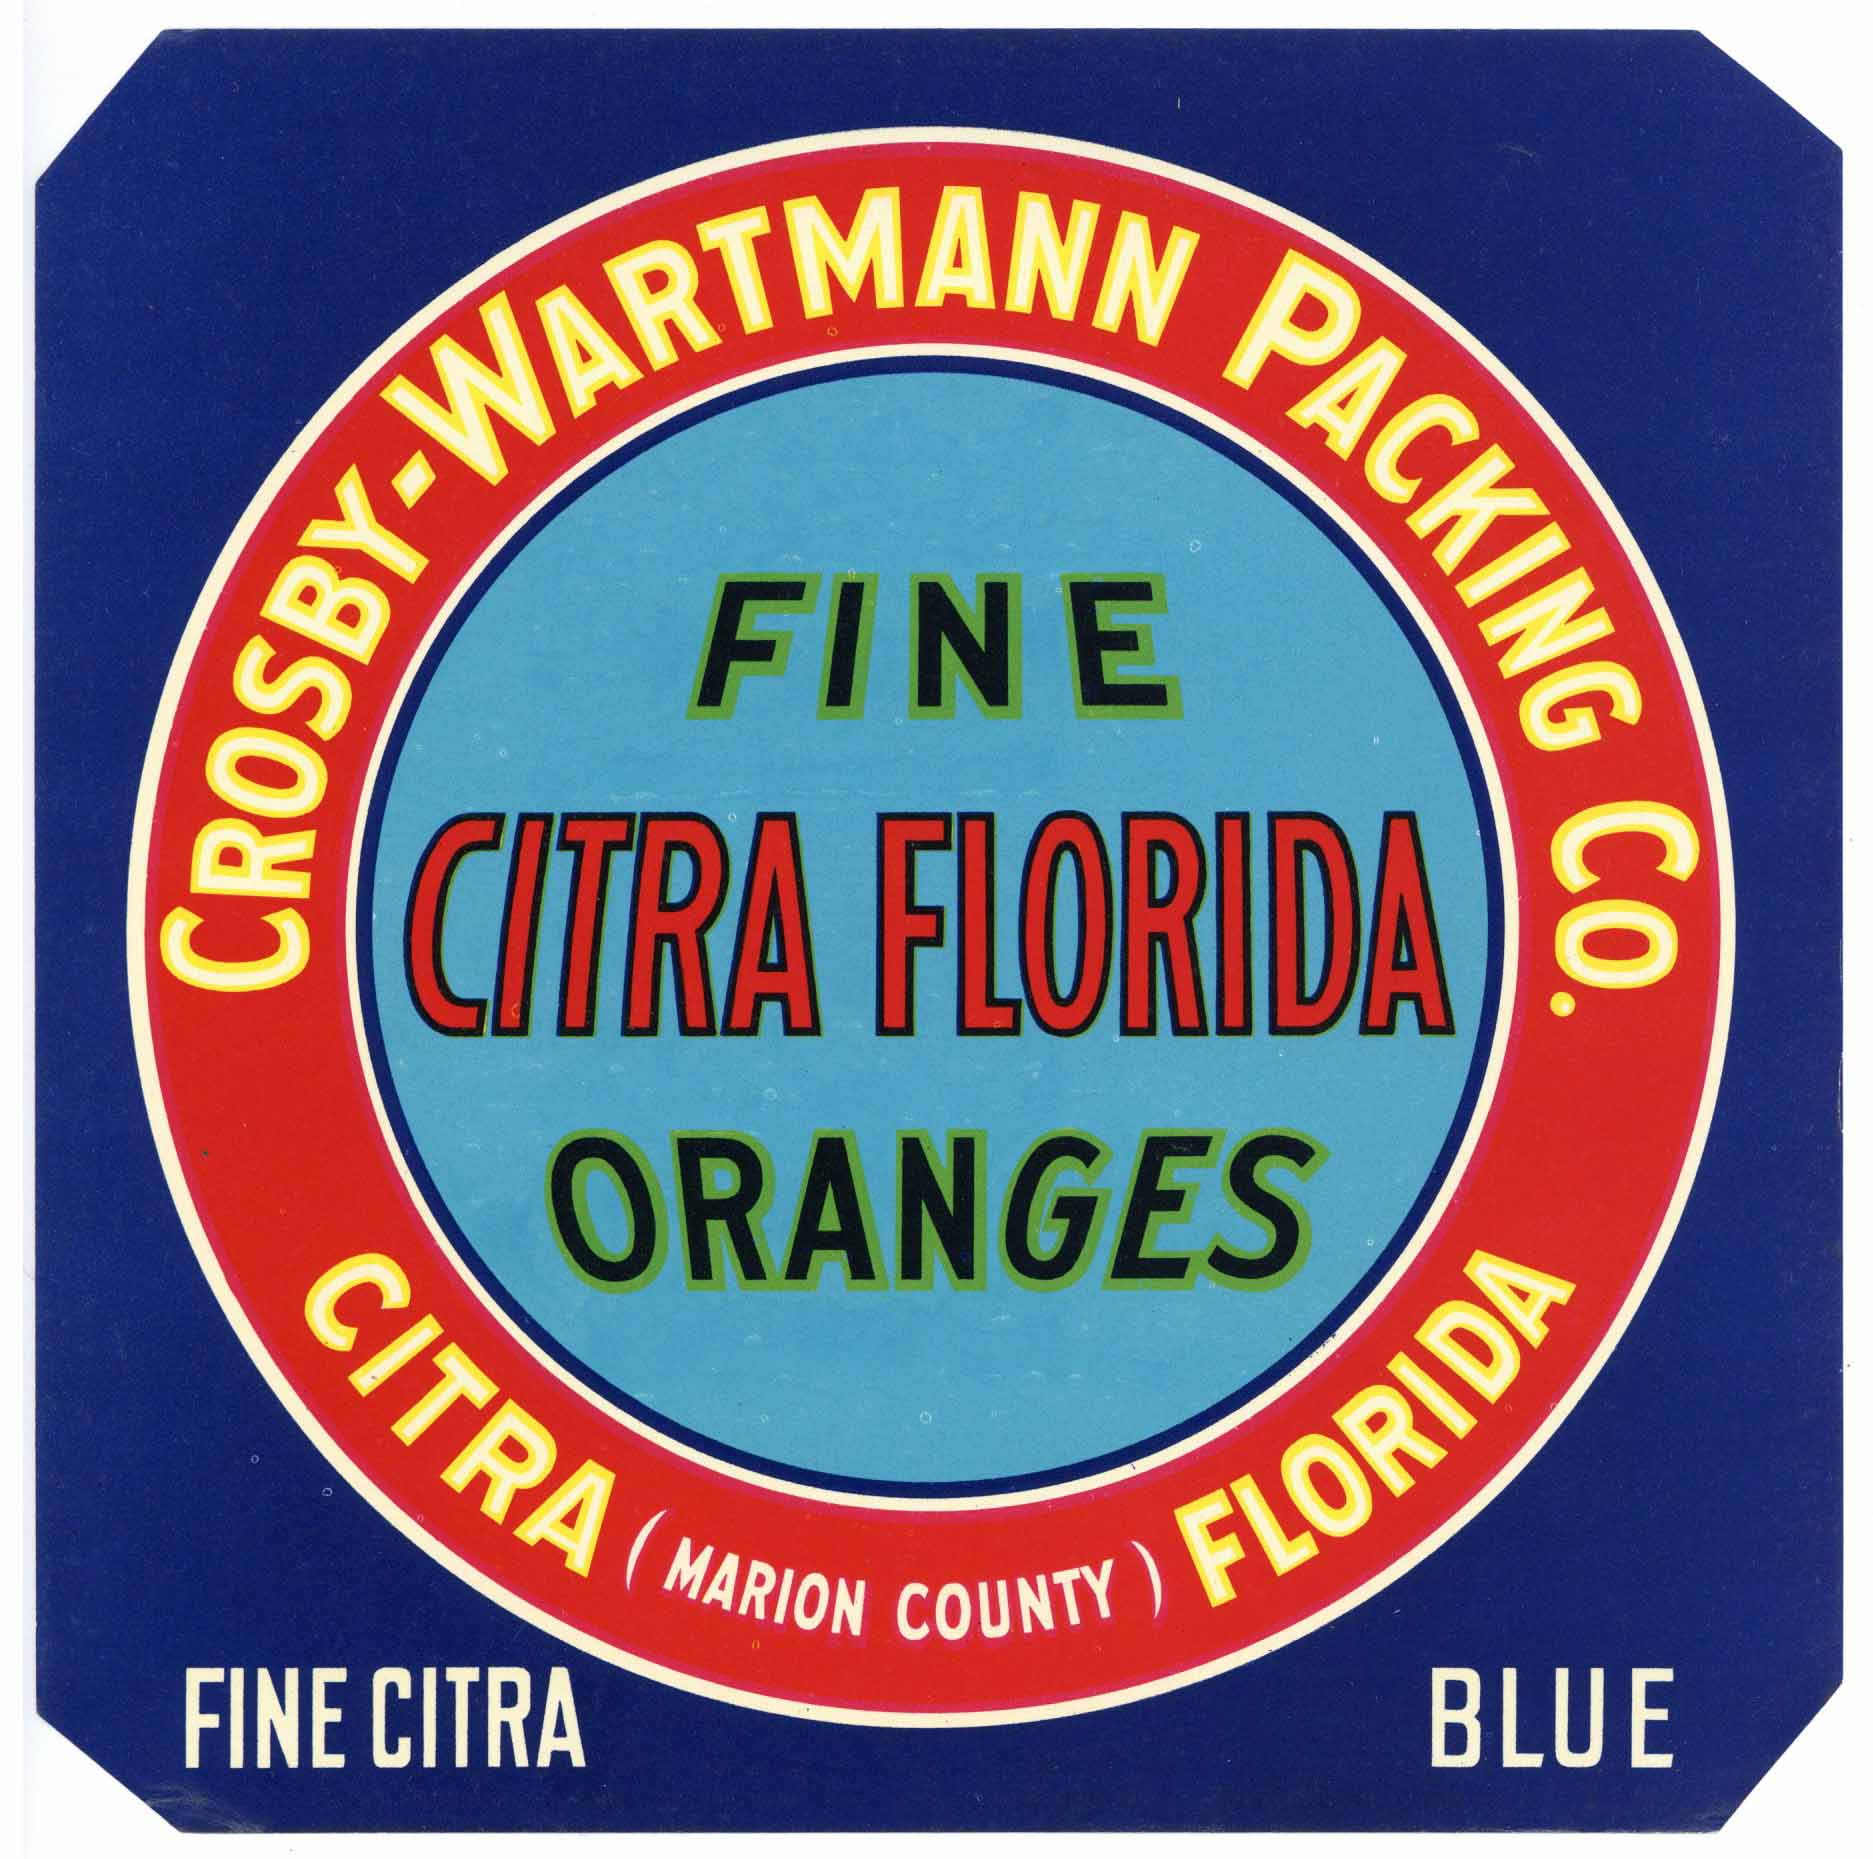 Citra Florida Brand Vintage Florida Citrus Crate Label, blue